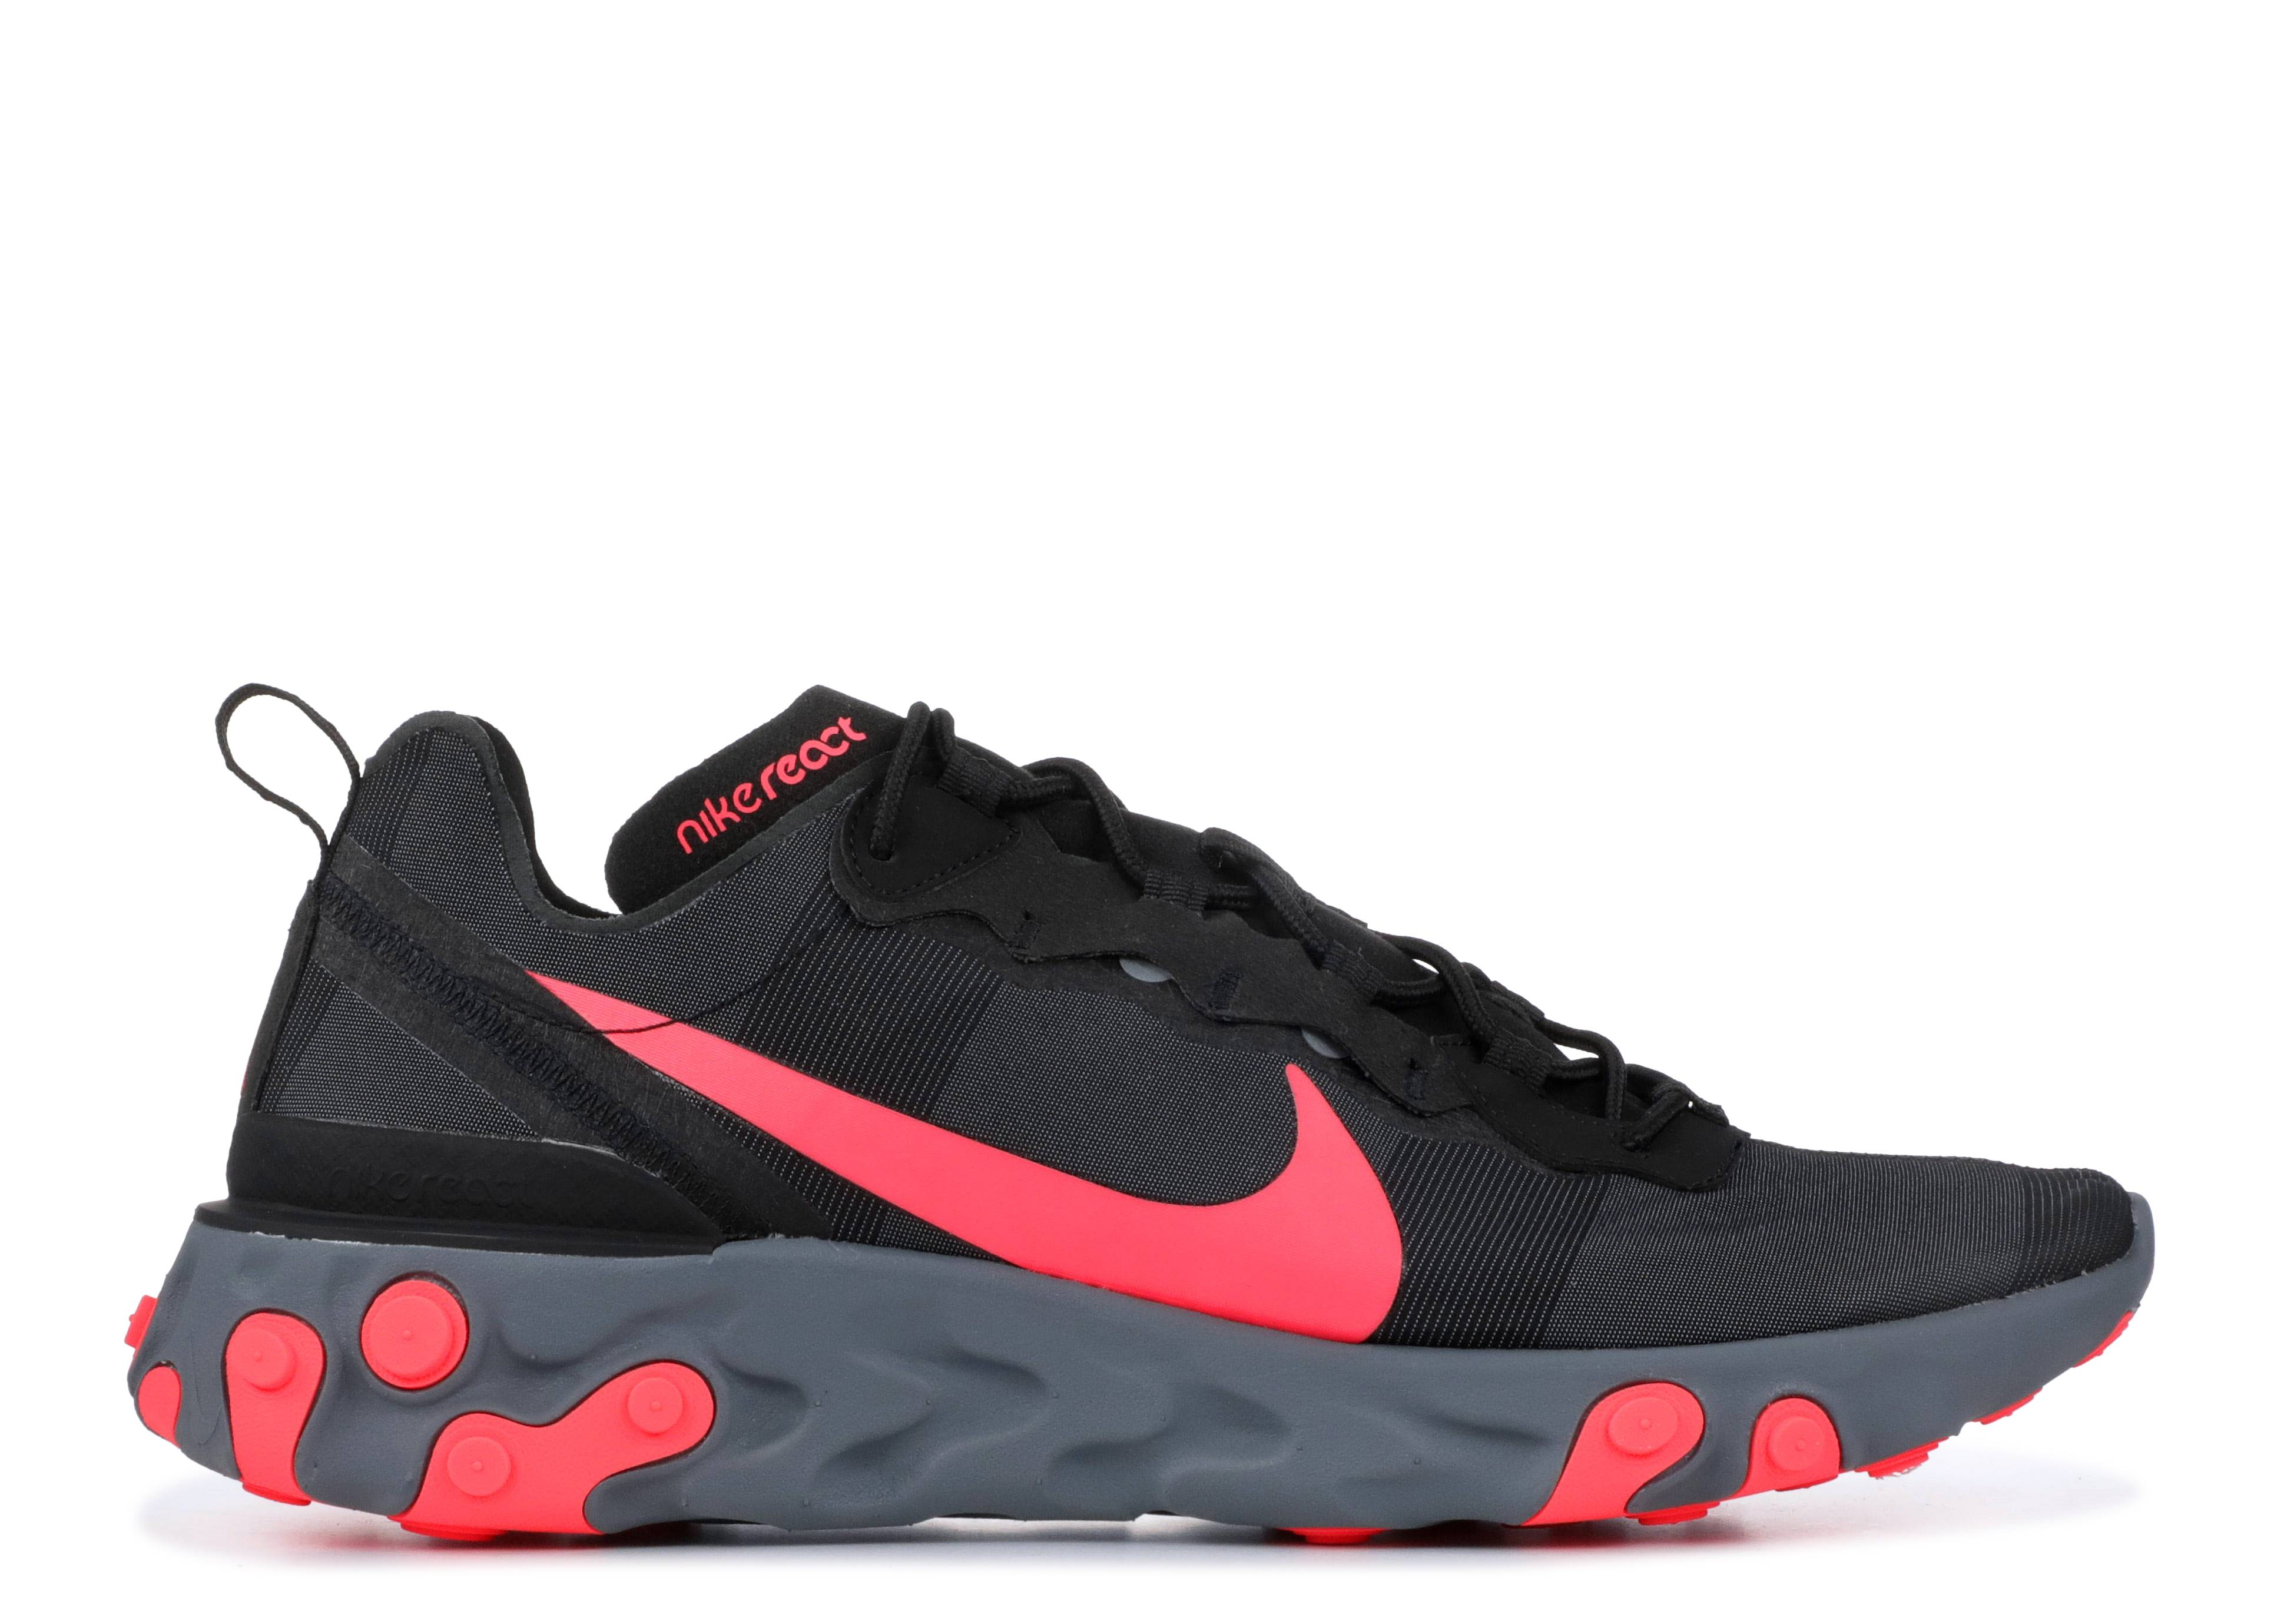 b9f7a85298759 Nike React Element 55 - Nike - bq6166 002 - black solar red-cool ...